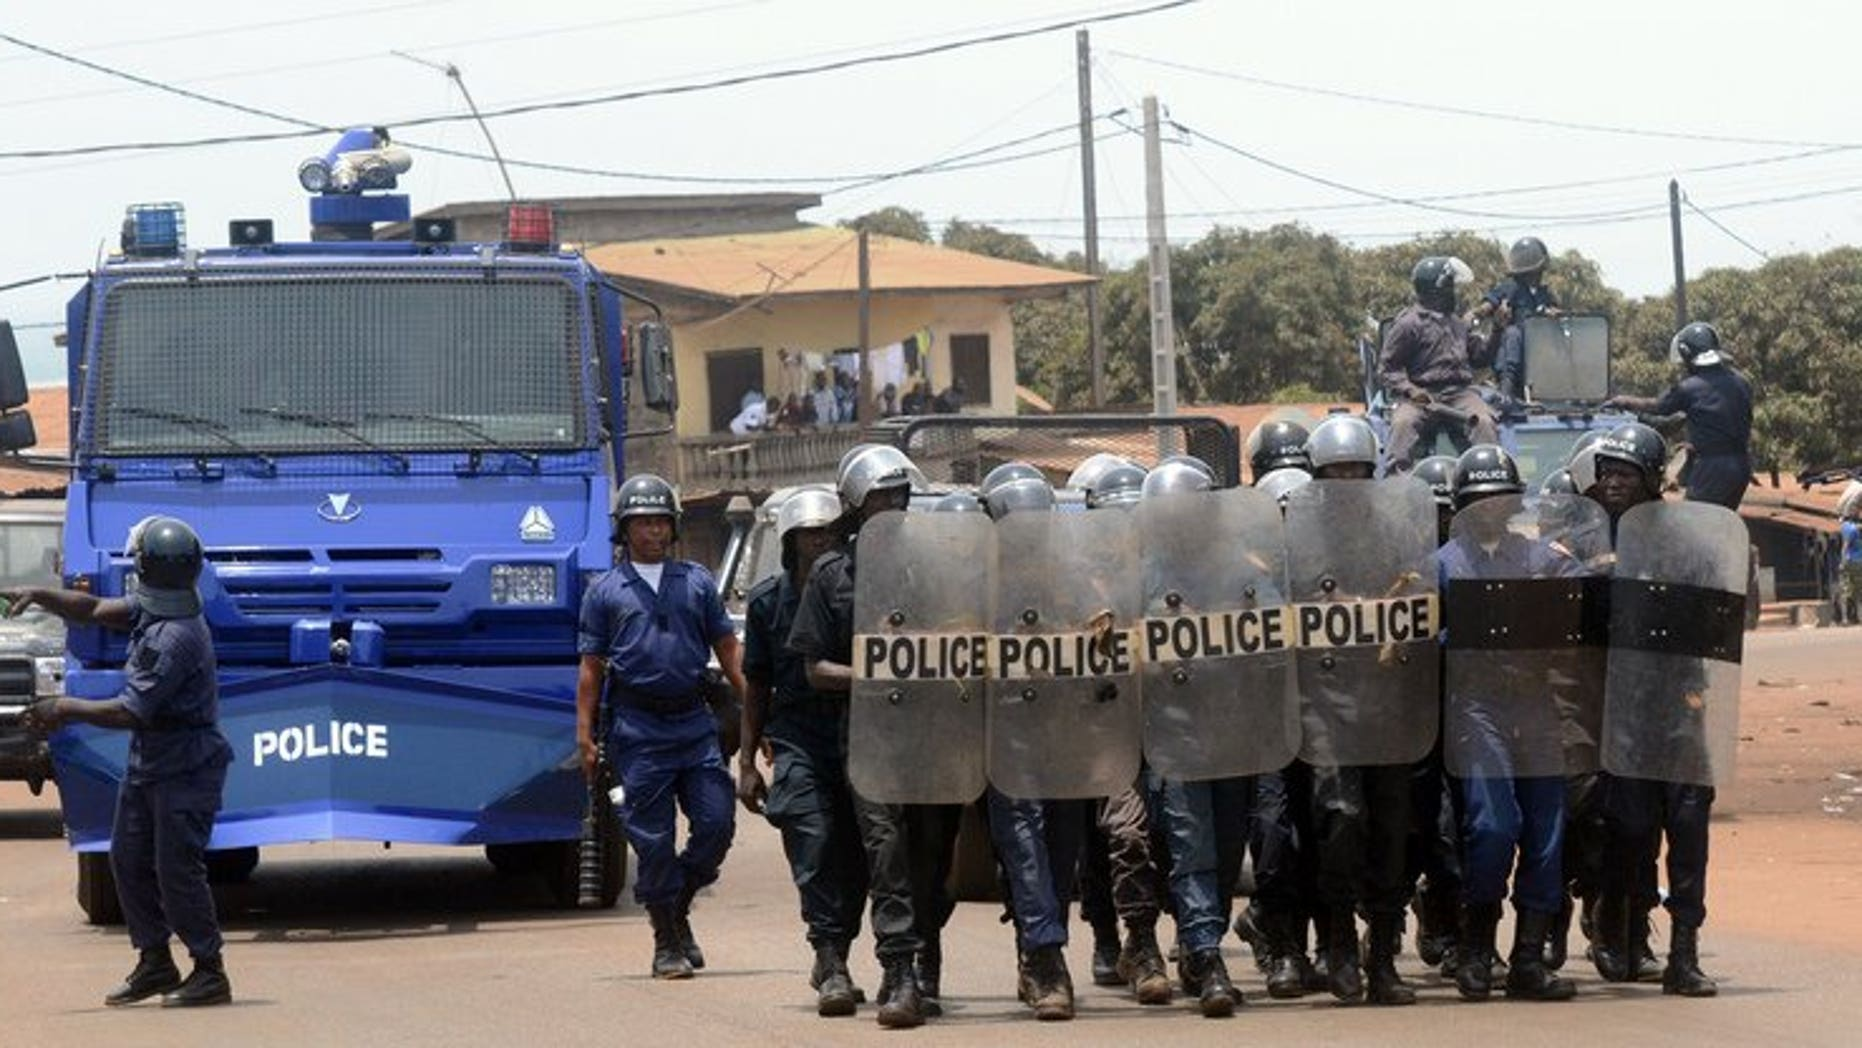 Guinea's police forces prepare to disperse a demonstration in Conakry on May 2, 2013. A radio station in the east of Guinea was ransacked by pro-government demonstrators for reporting on protests against President Alpha Conde, employees told AFP.